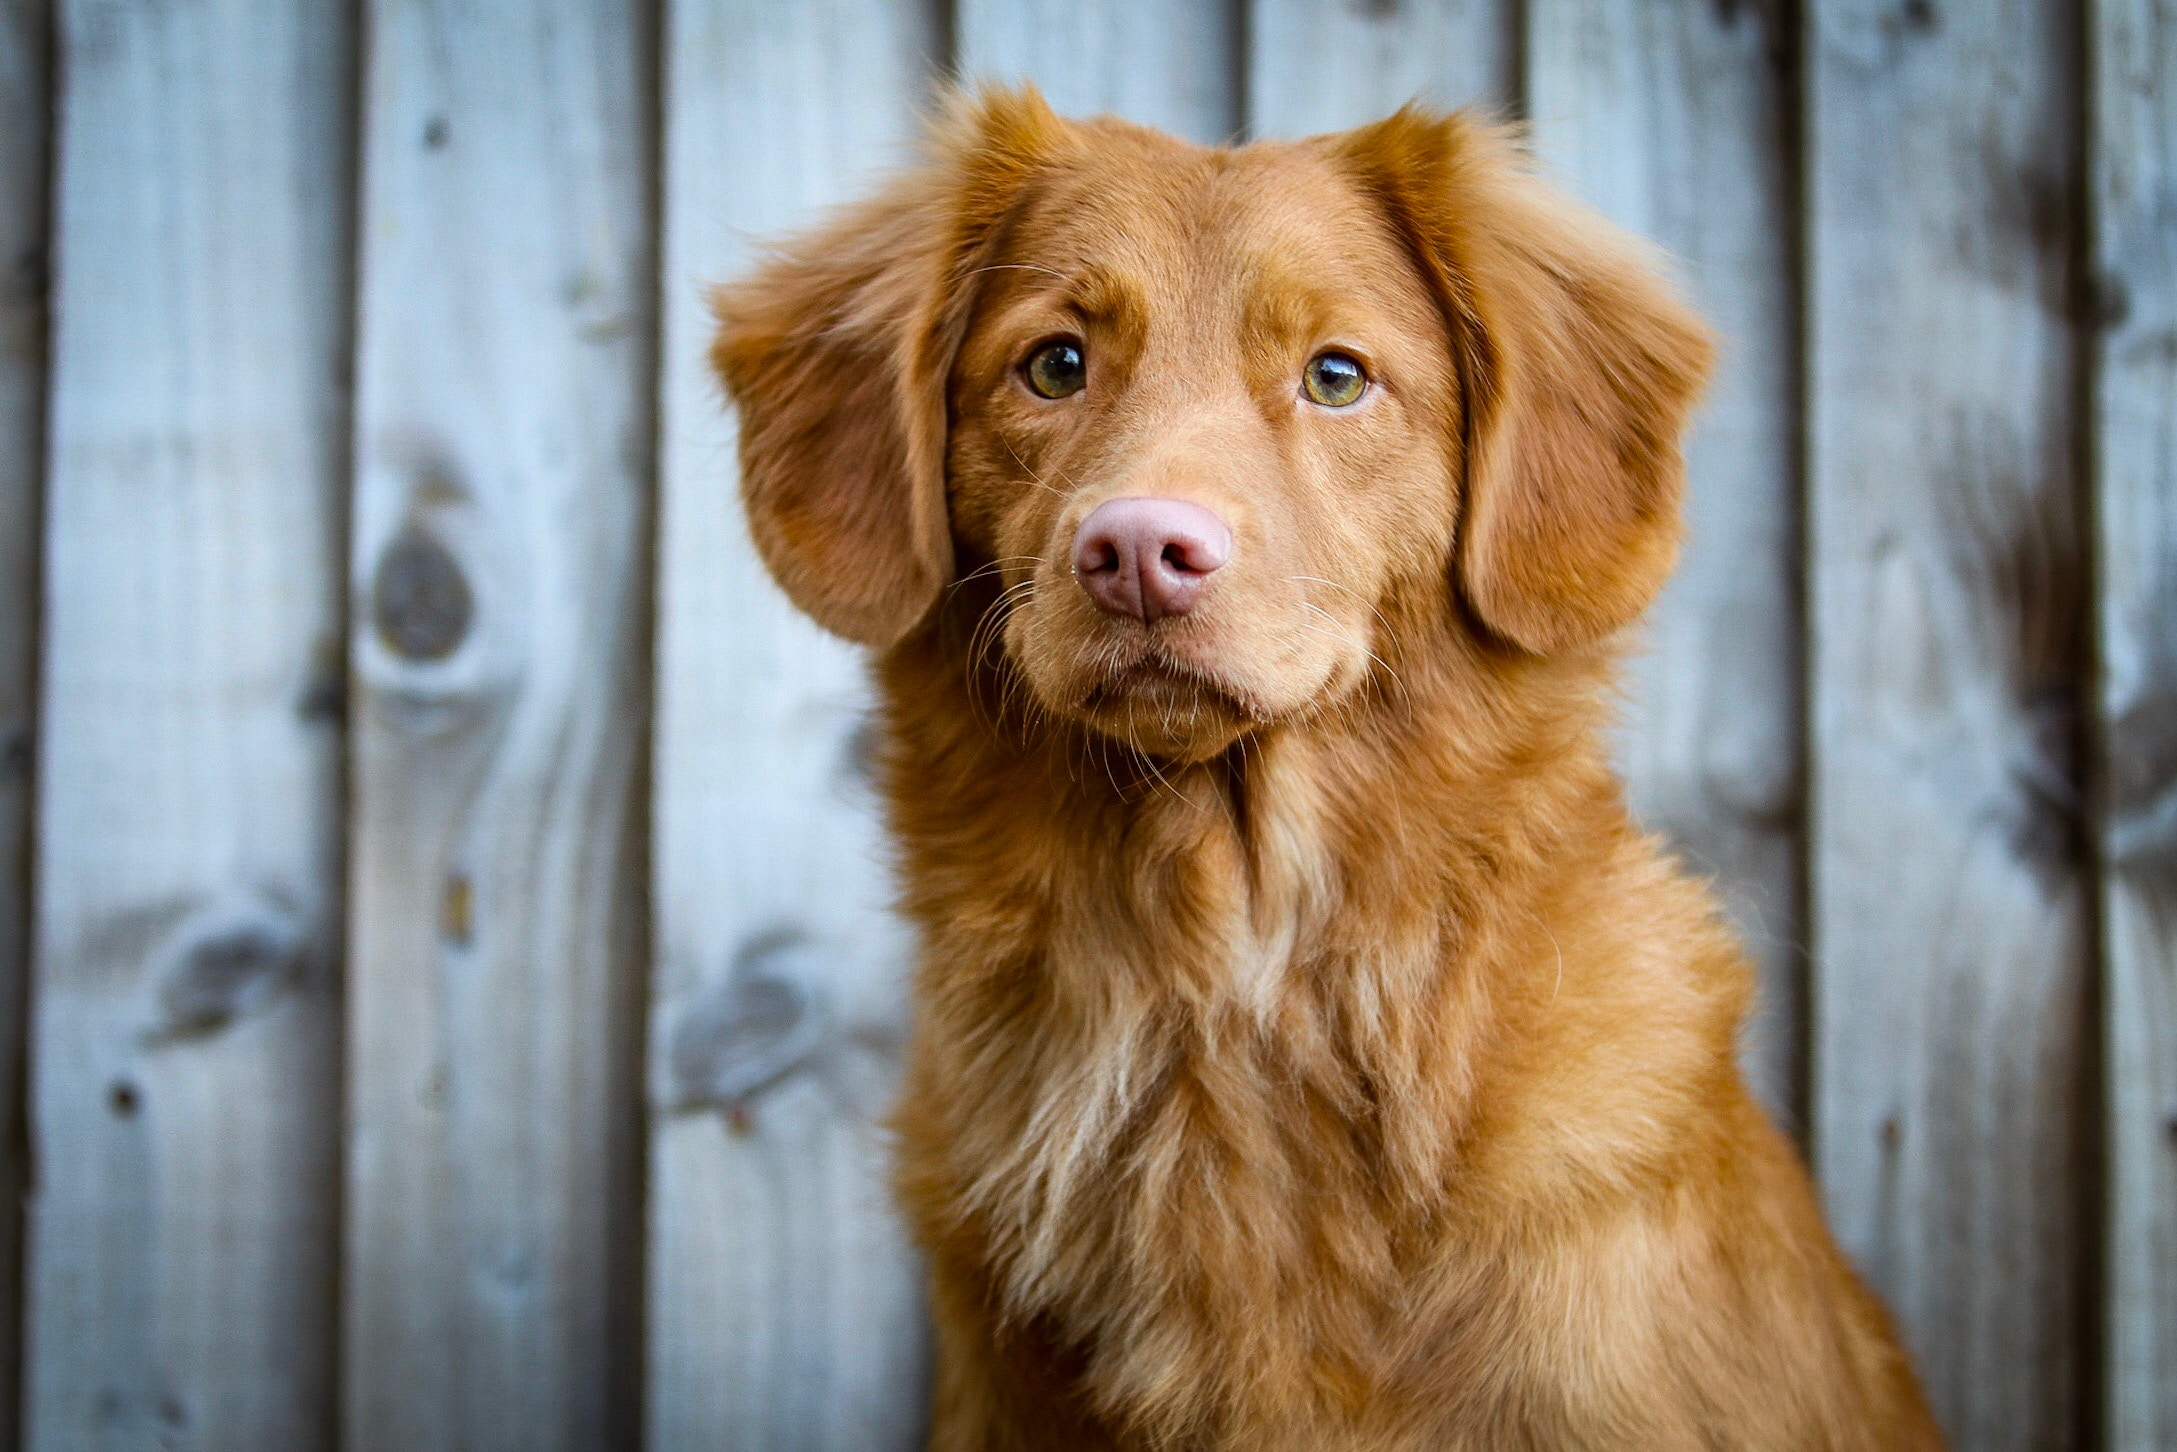 Toller waiting for a dog walk